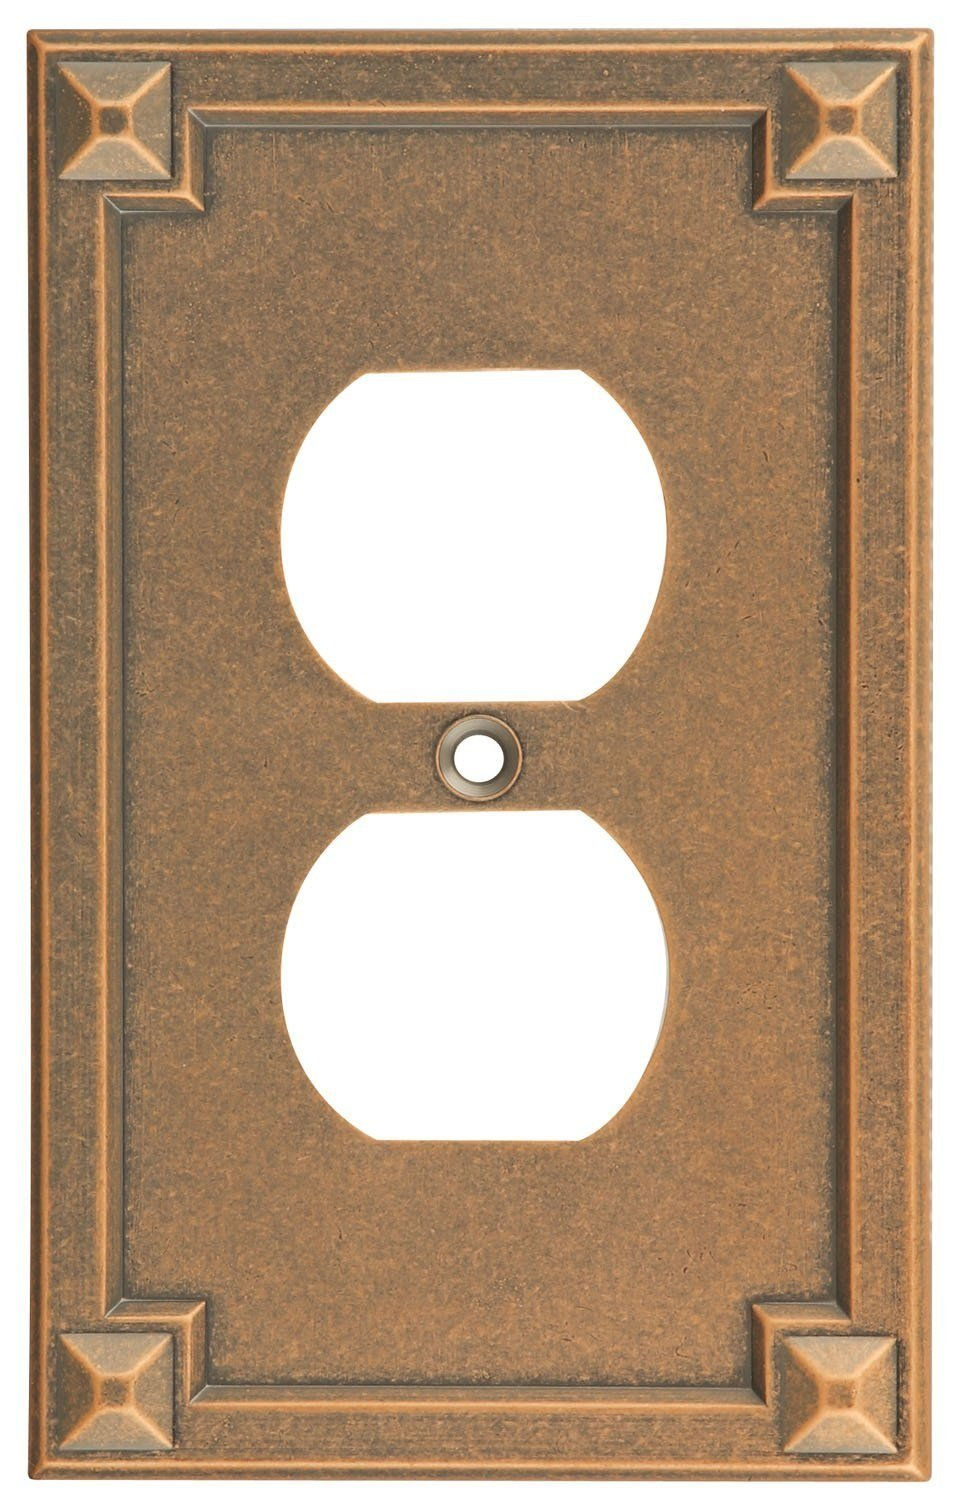 Stanley (S803-882) Wall Plate, Distressed Antique Copper - Lot of 5